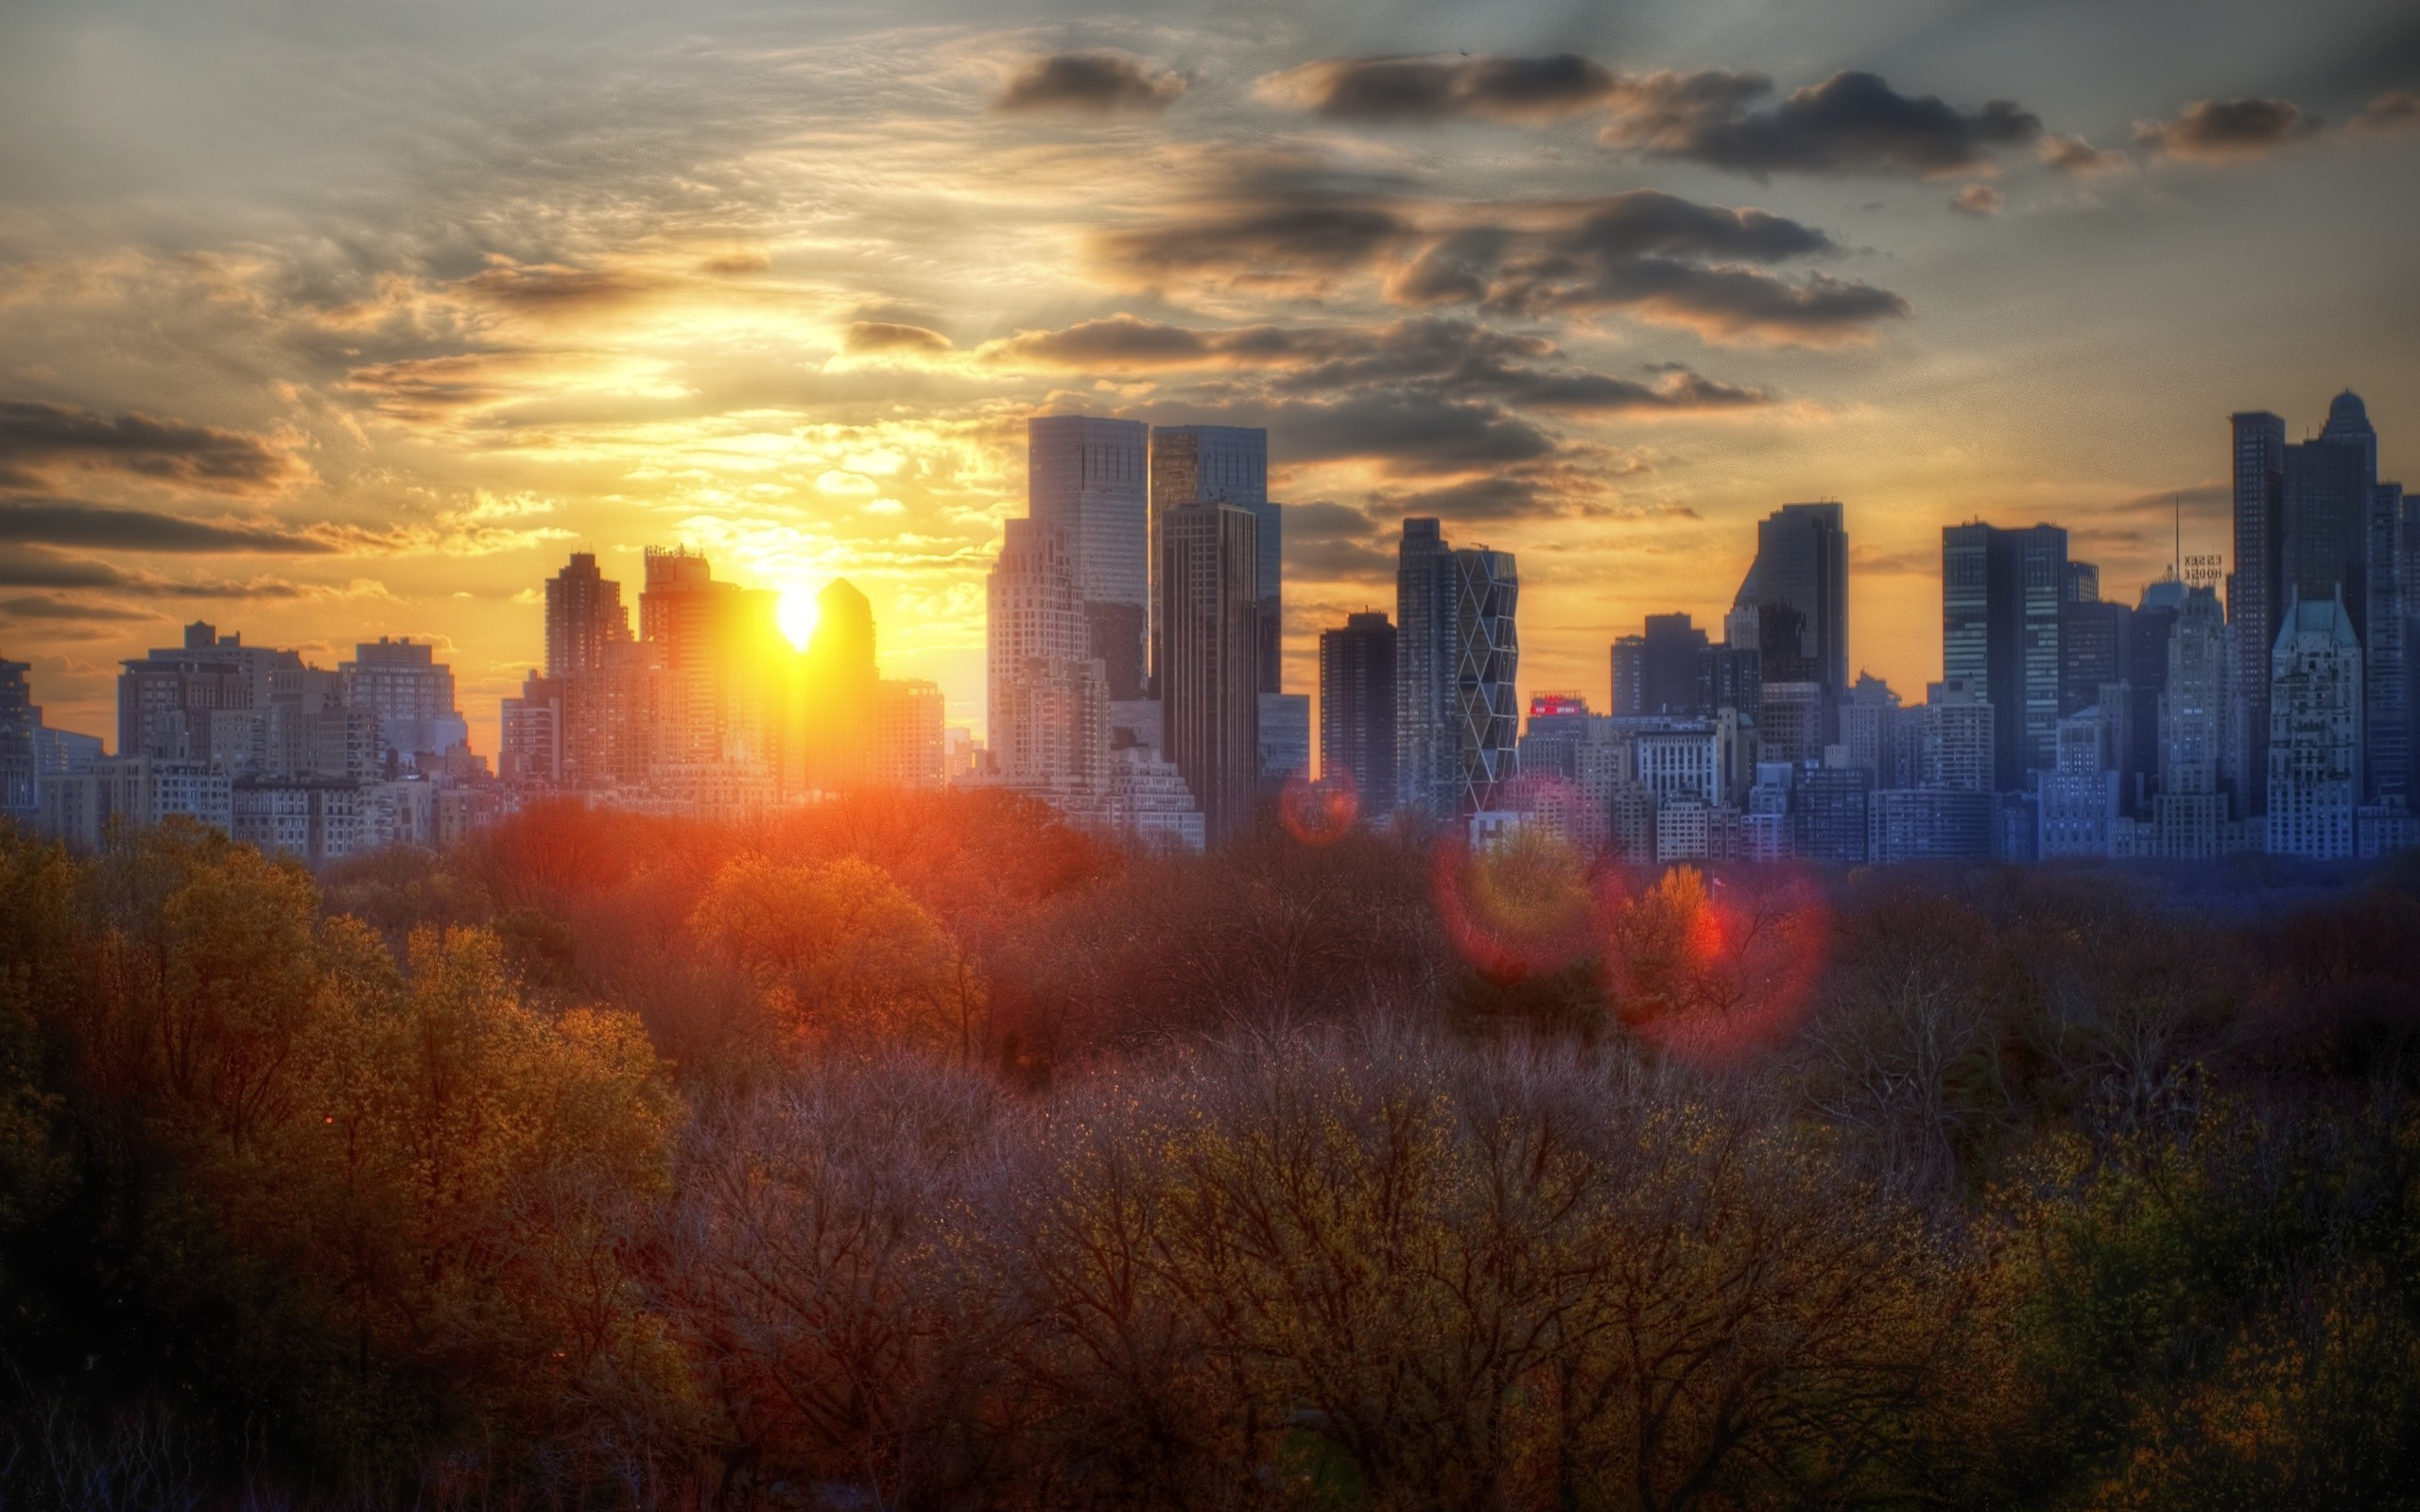 New York City Sunrise Wallpaper 4K